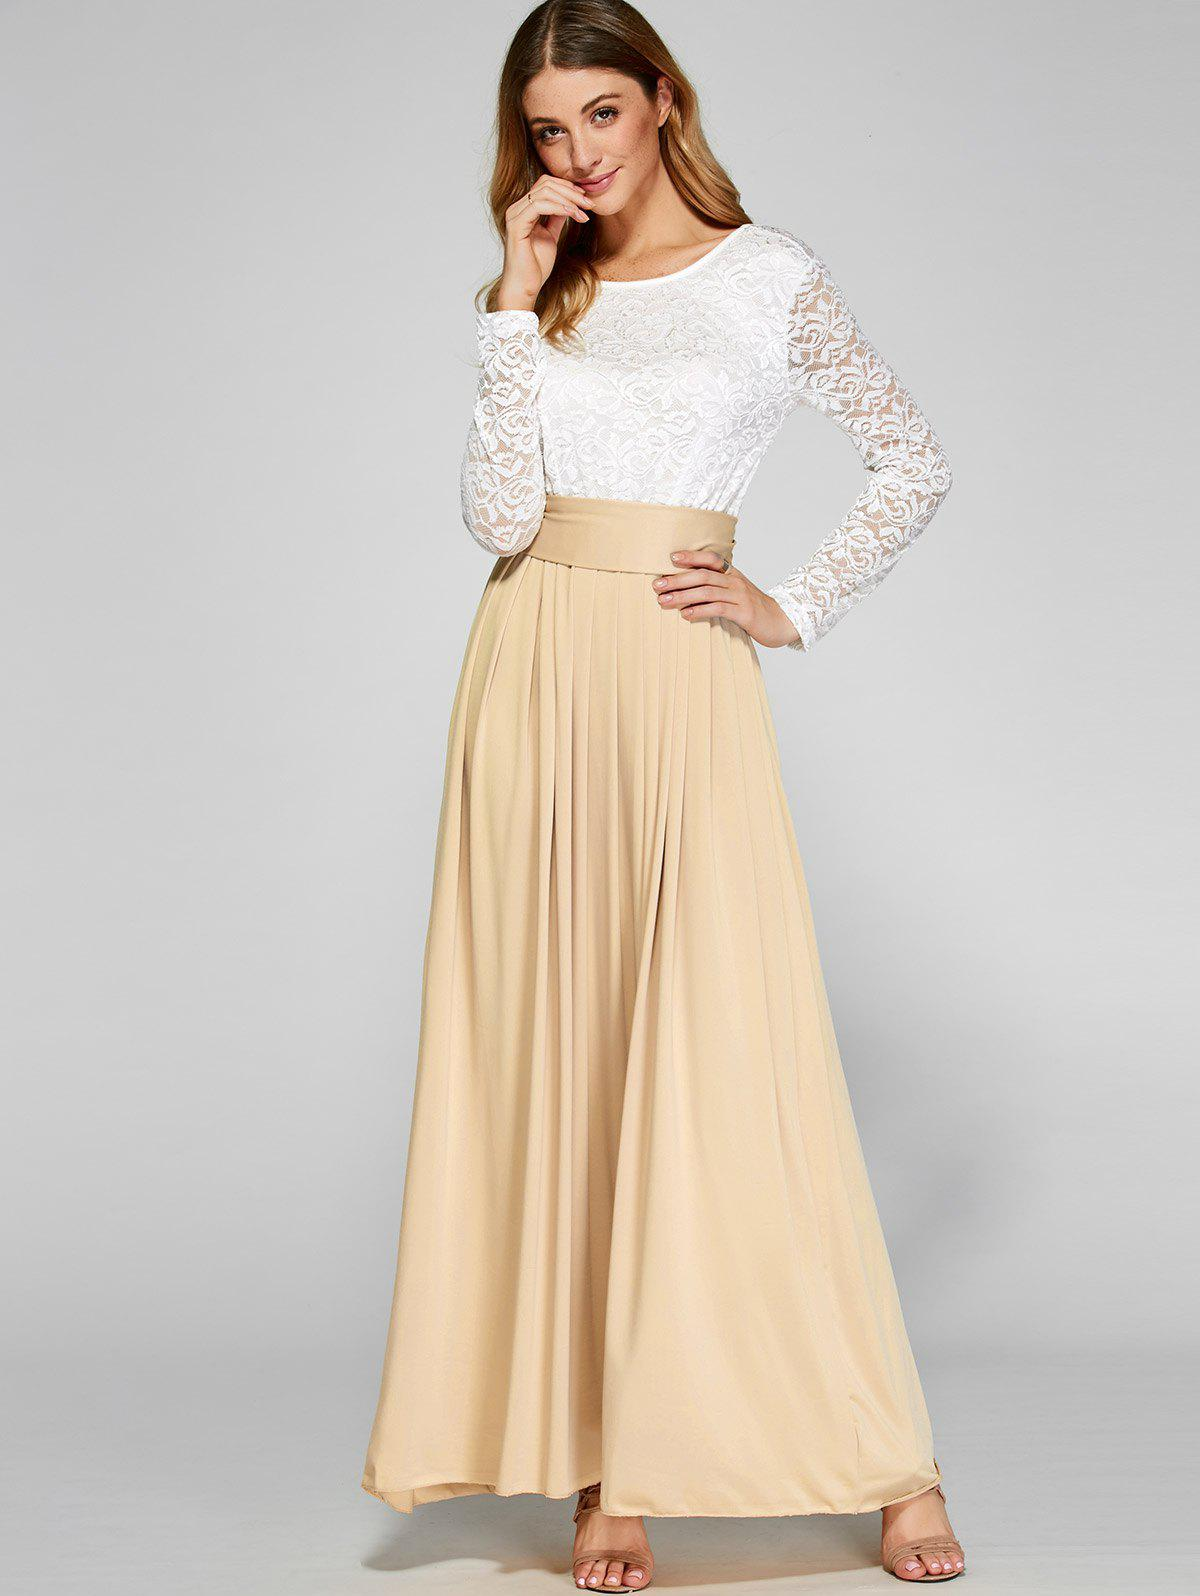 Wedding Guest Dresses Lace : Dresses ? maxi lace panel pleated long wedding guest dress